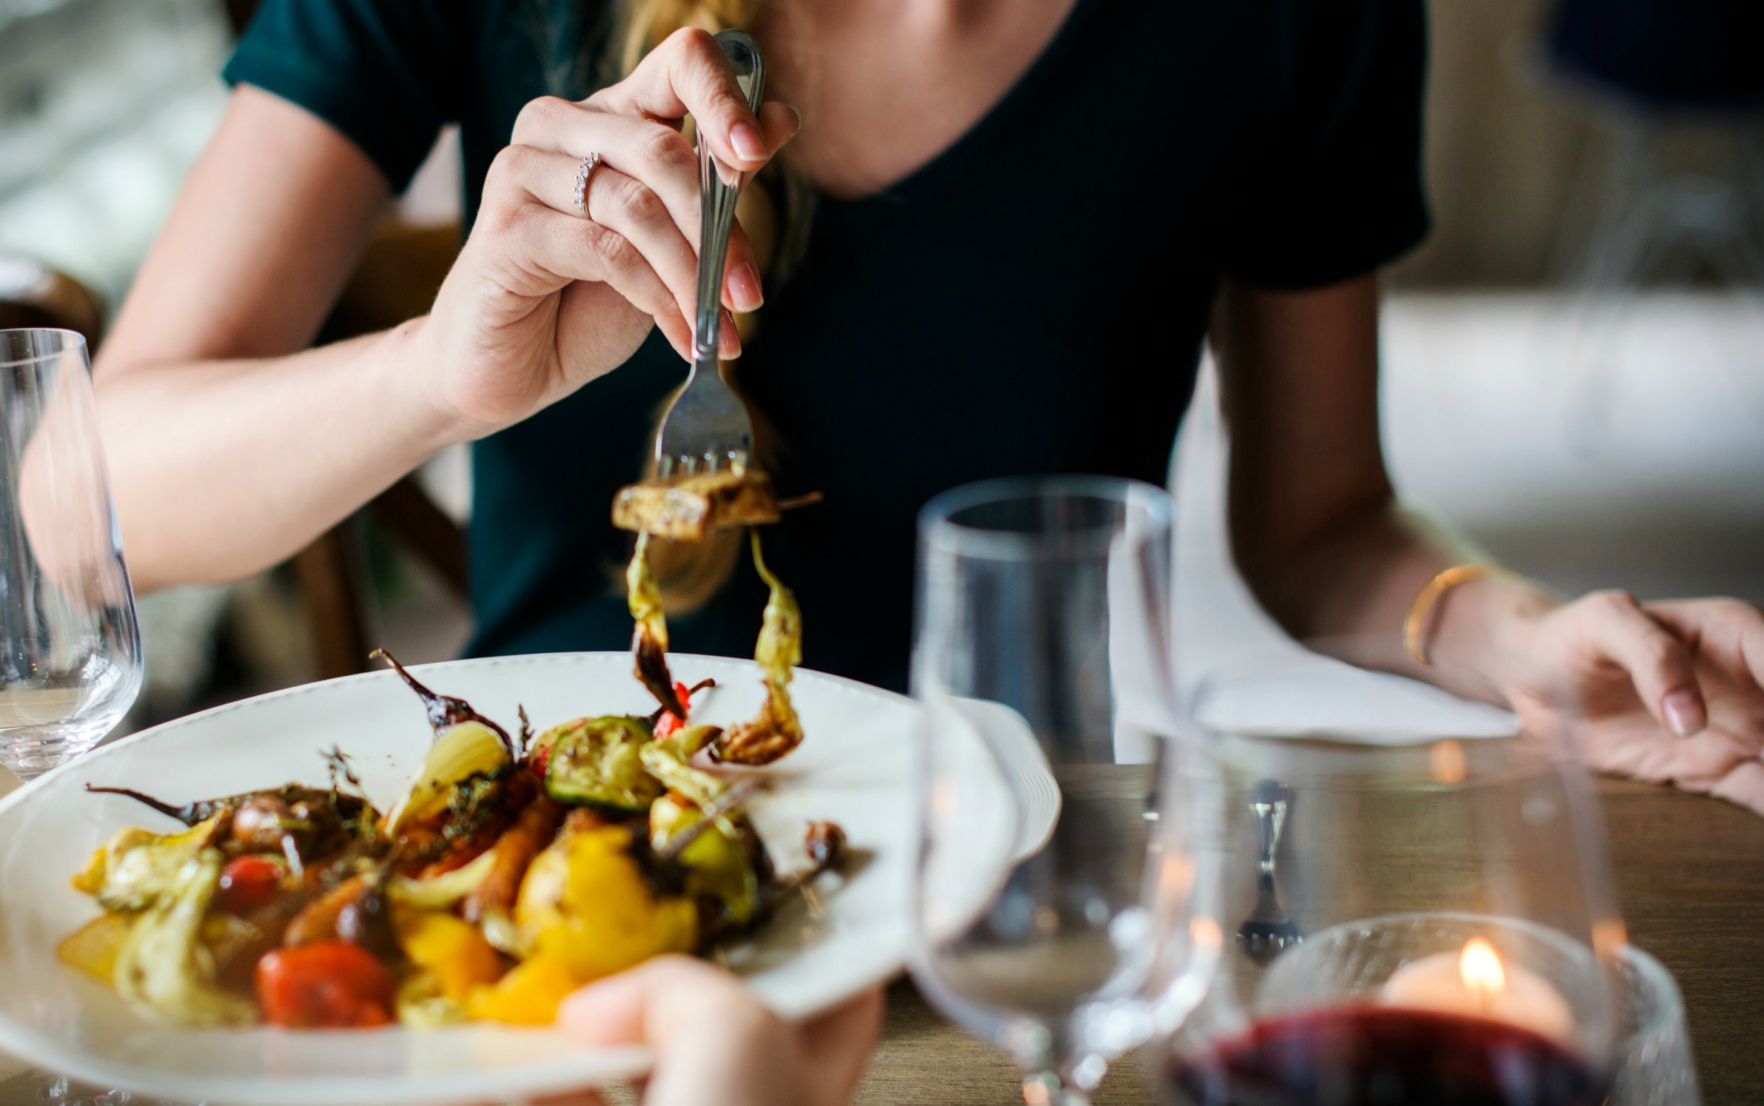 Eating in Russia: At the Table Superstitions